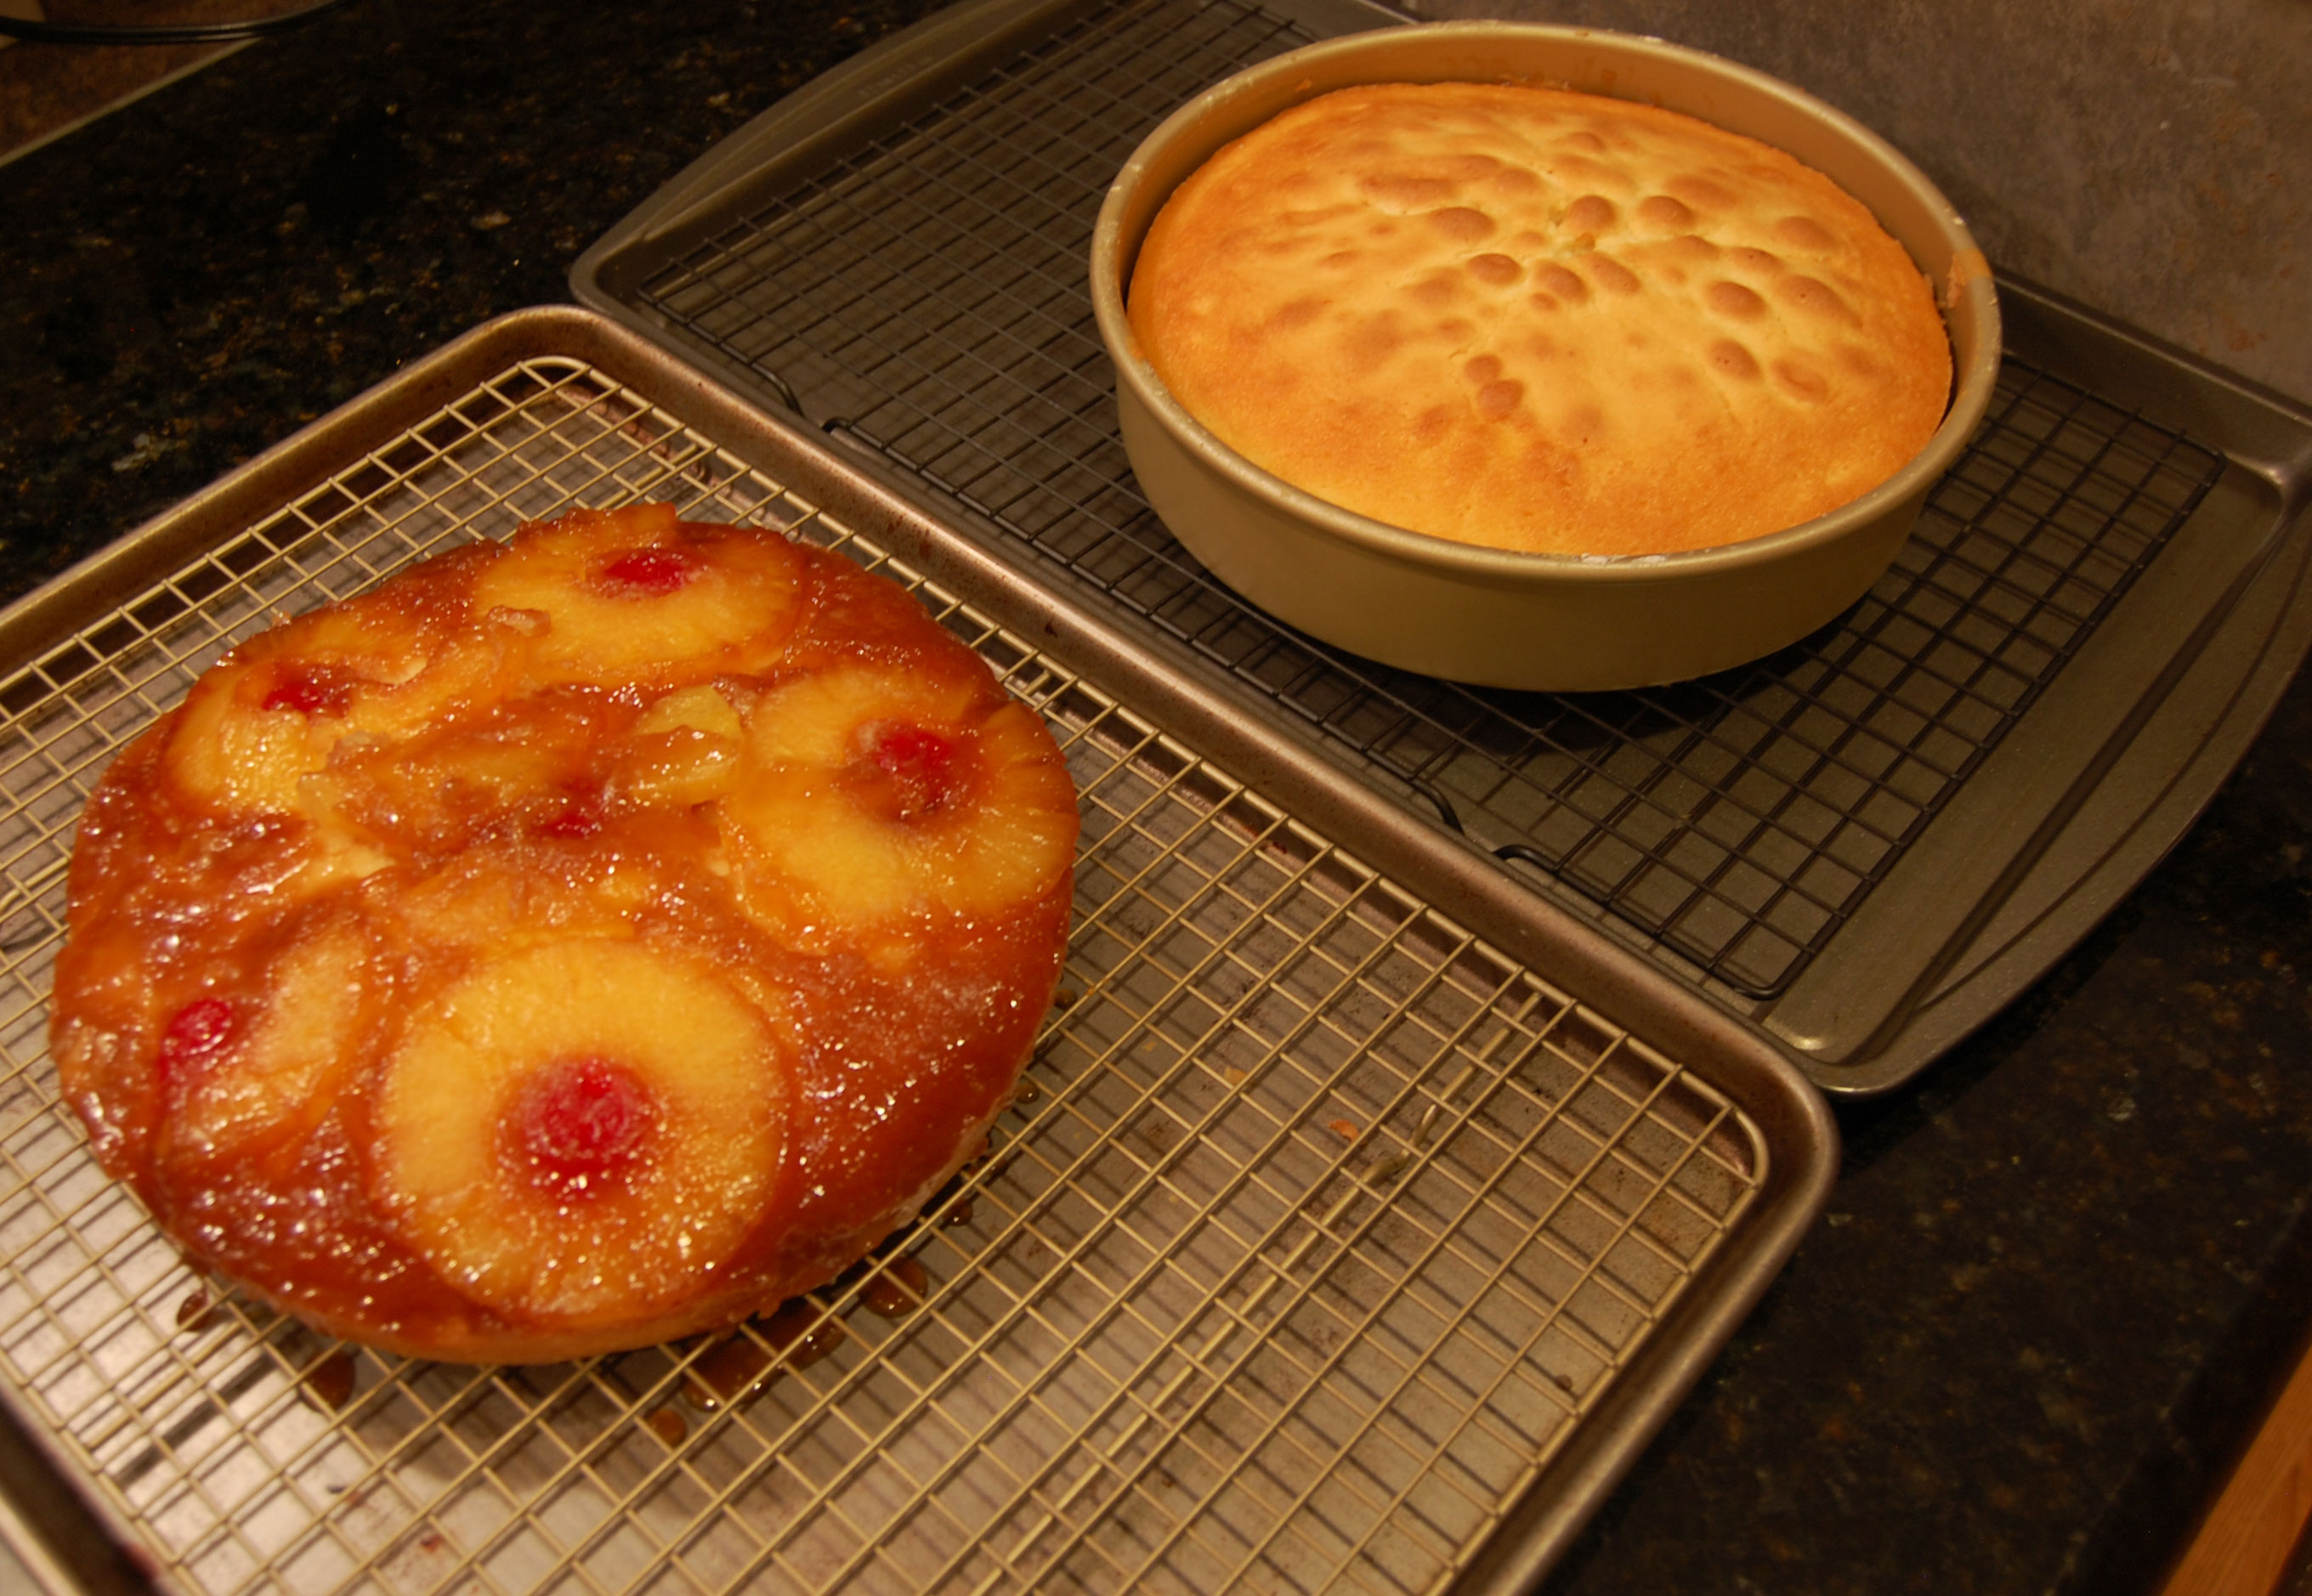 Getting the Pineapple Upside Down Cakes Out of the Oven